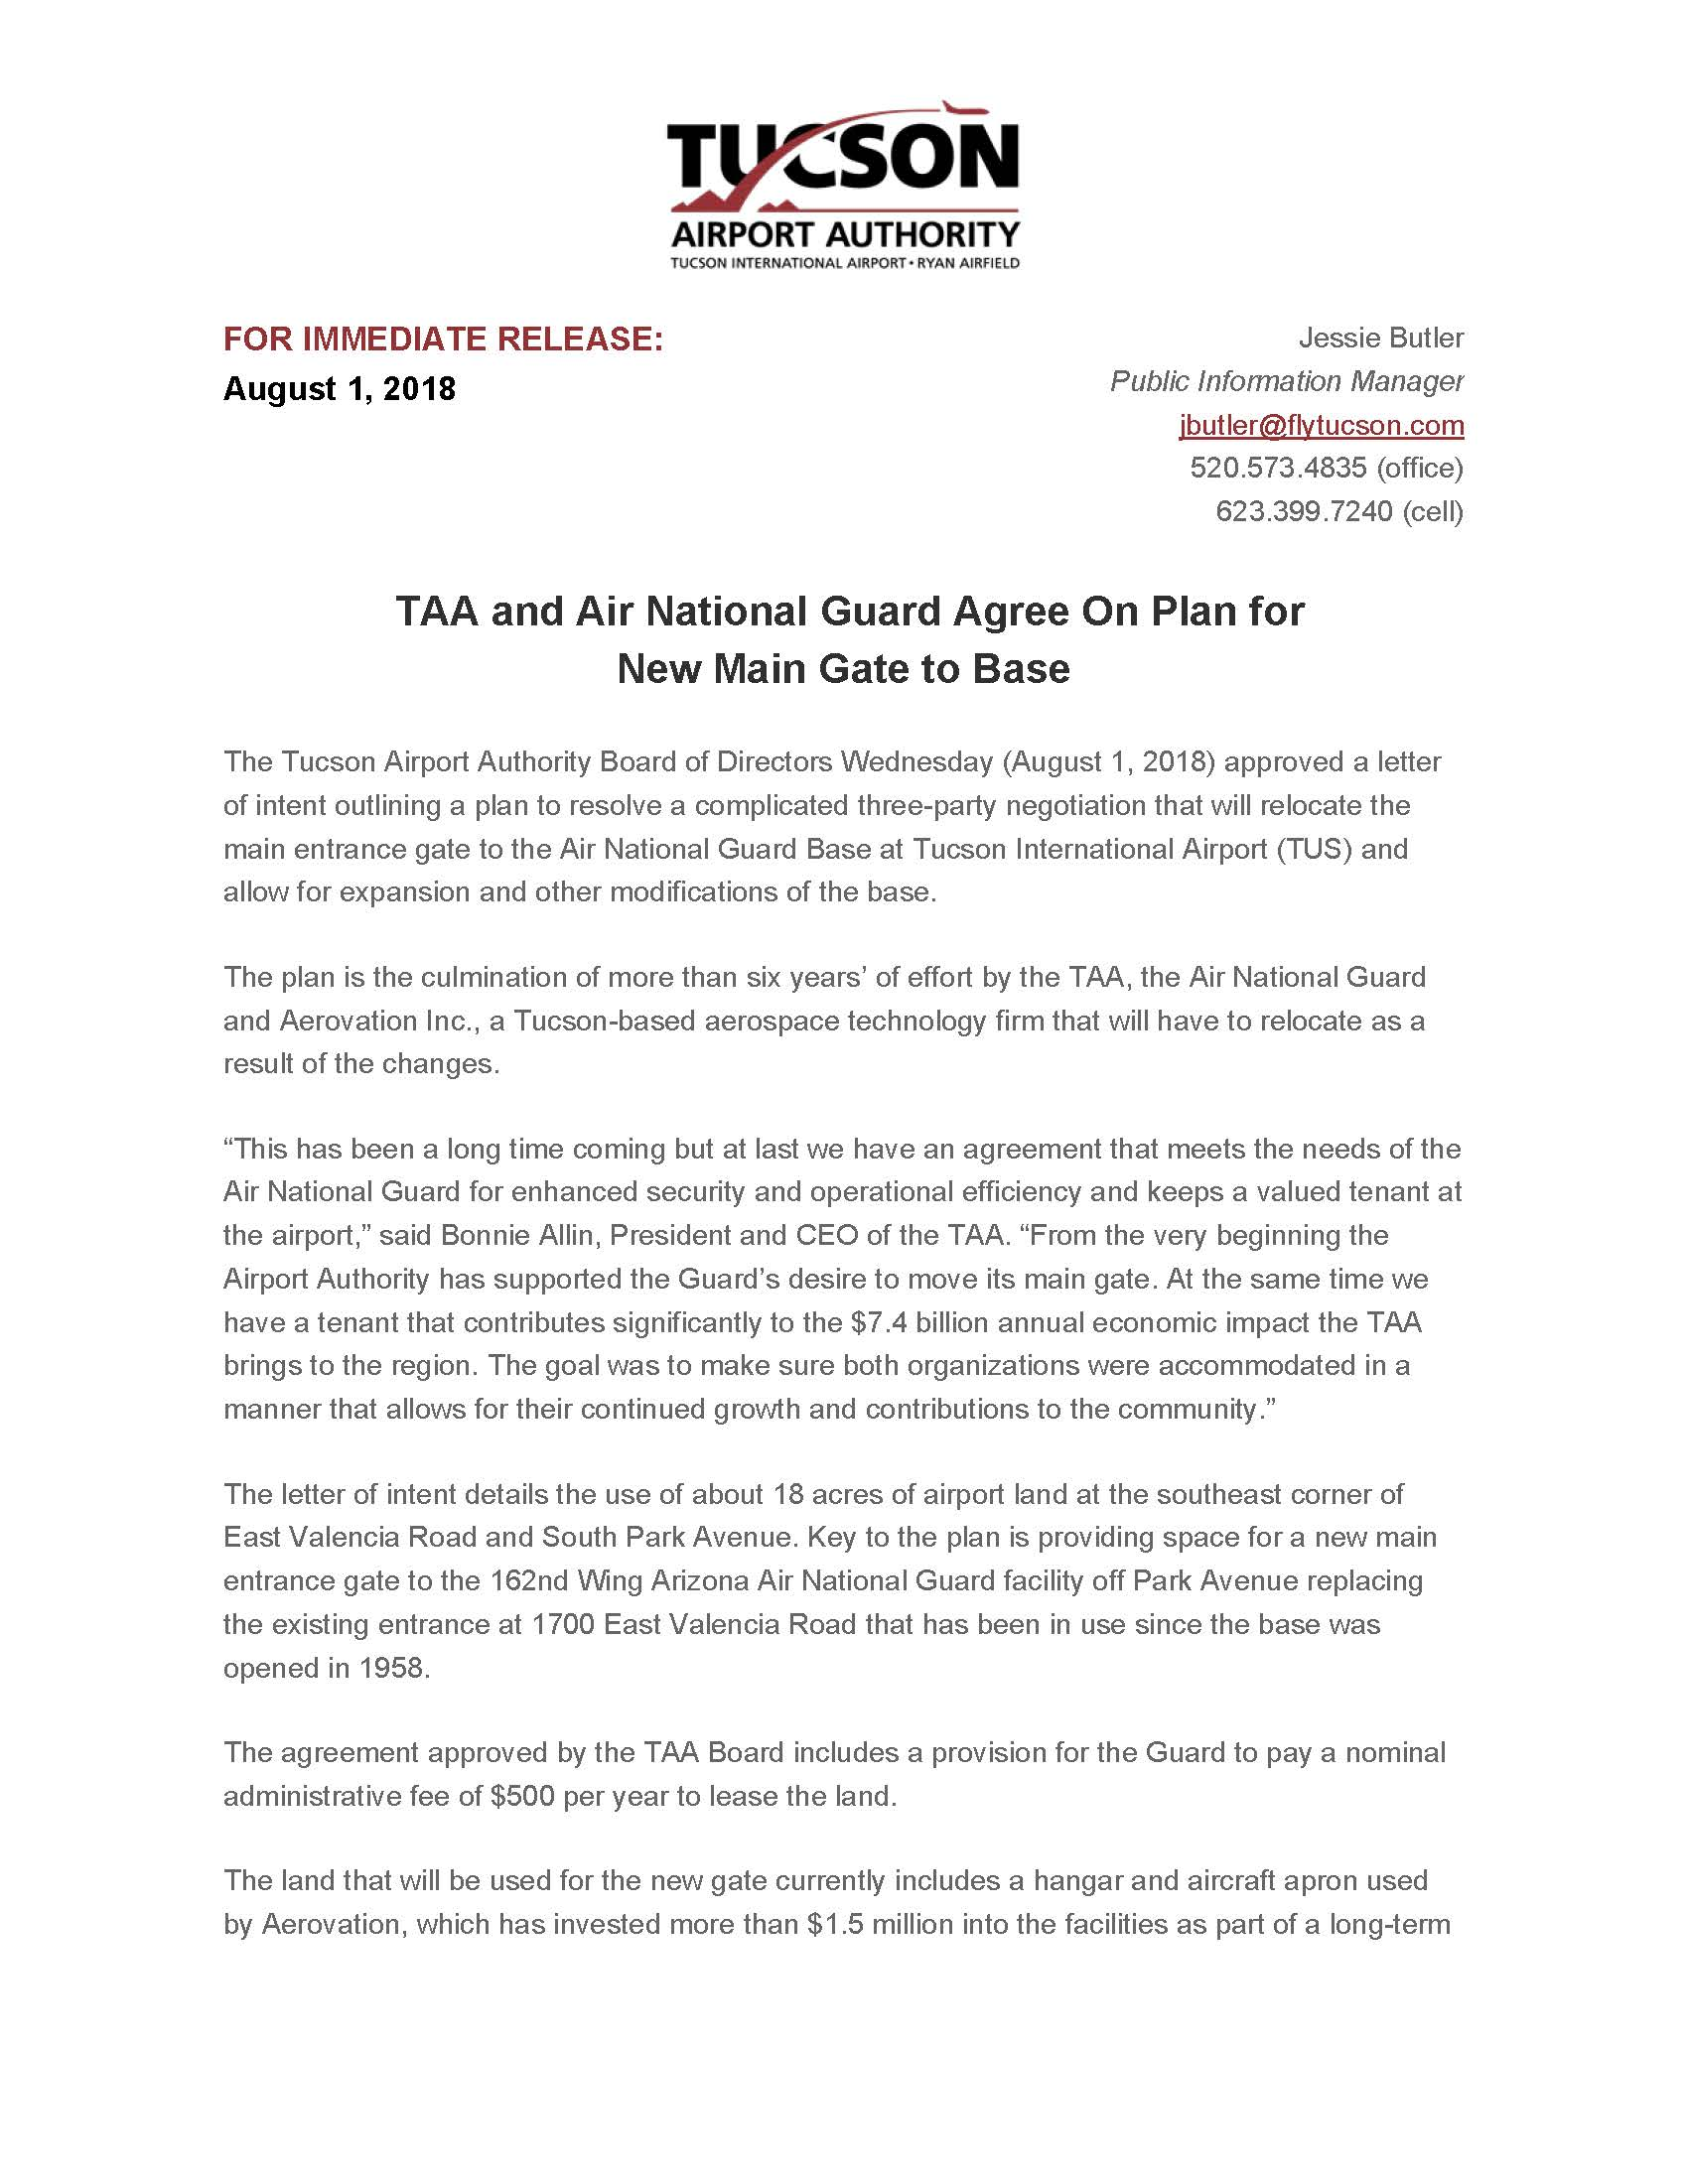 Taa And Air National Guard Agree On Plan For New Main Gate